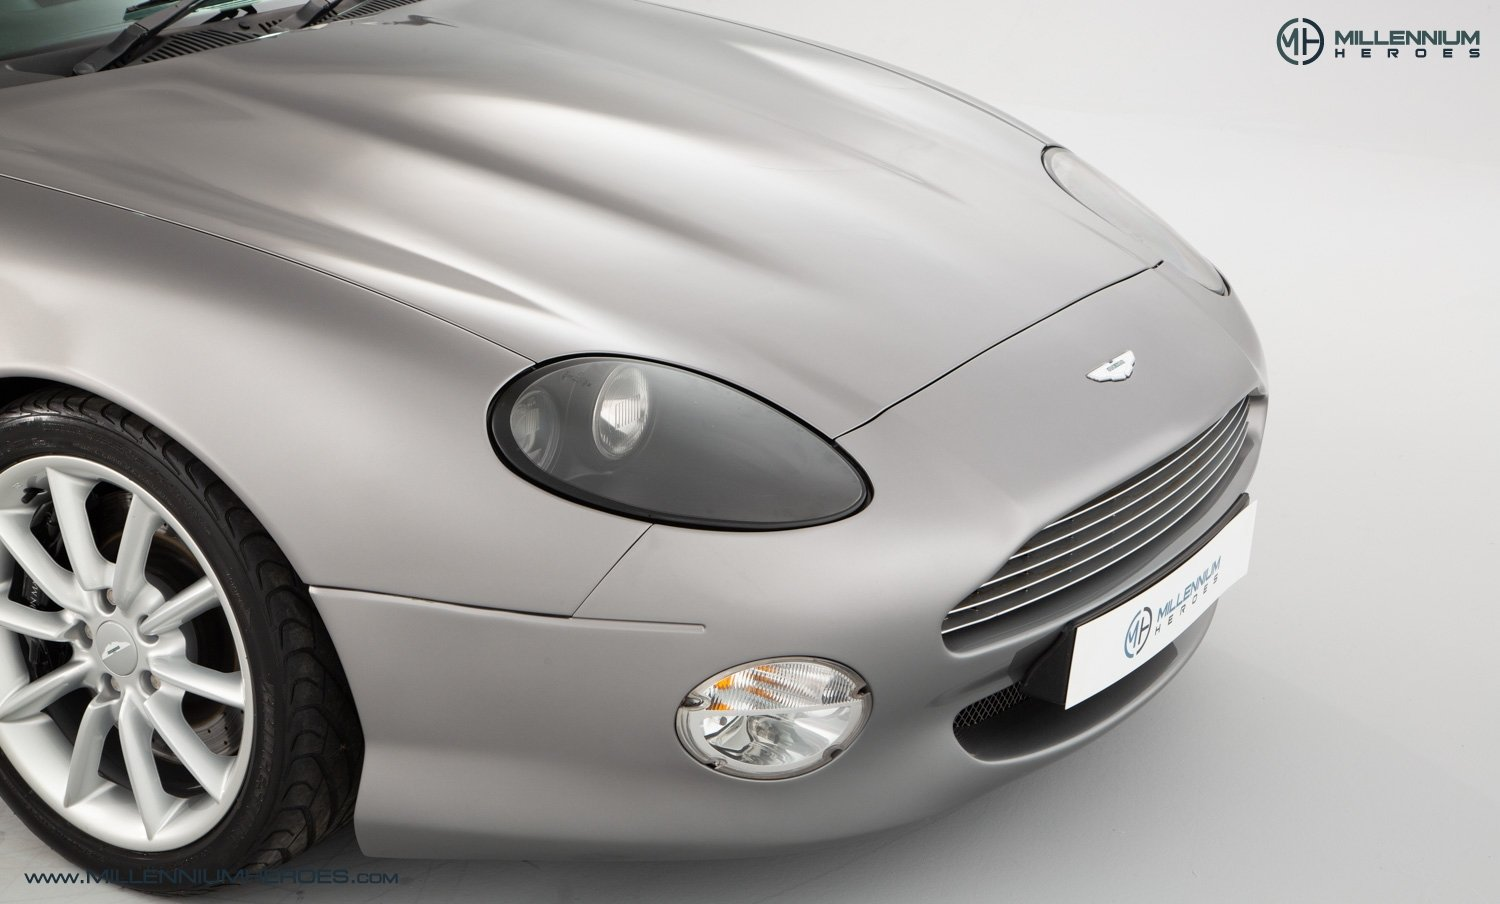 2000 ASTON MARTIN DB7 5.9 VANTAGE  For Sale (picture 7 of 24)